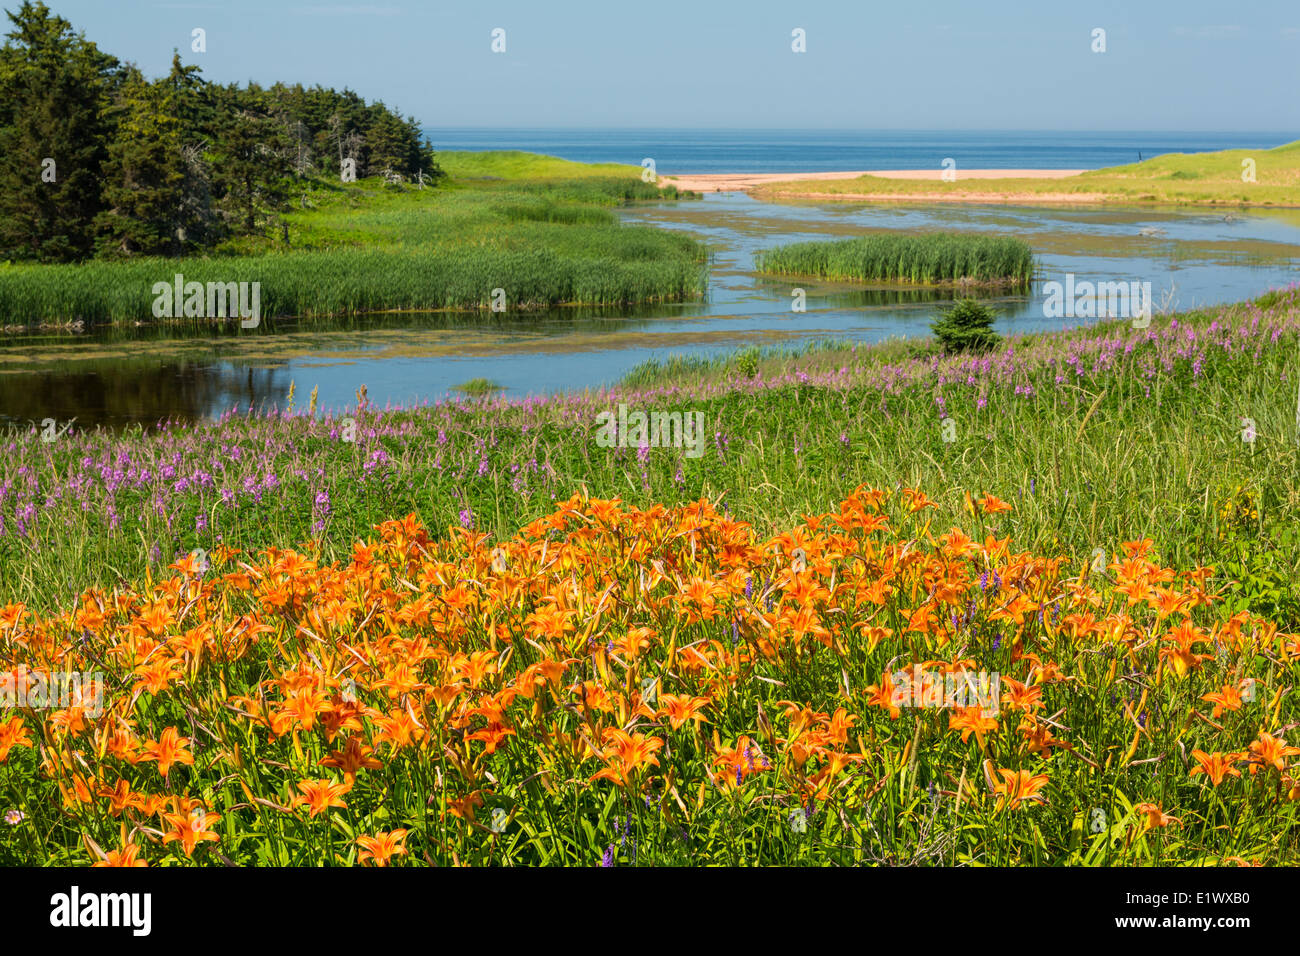 Priest Pond, Prince Edward Island, Canada - Stock Image